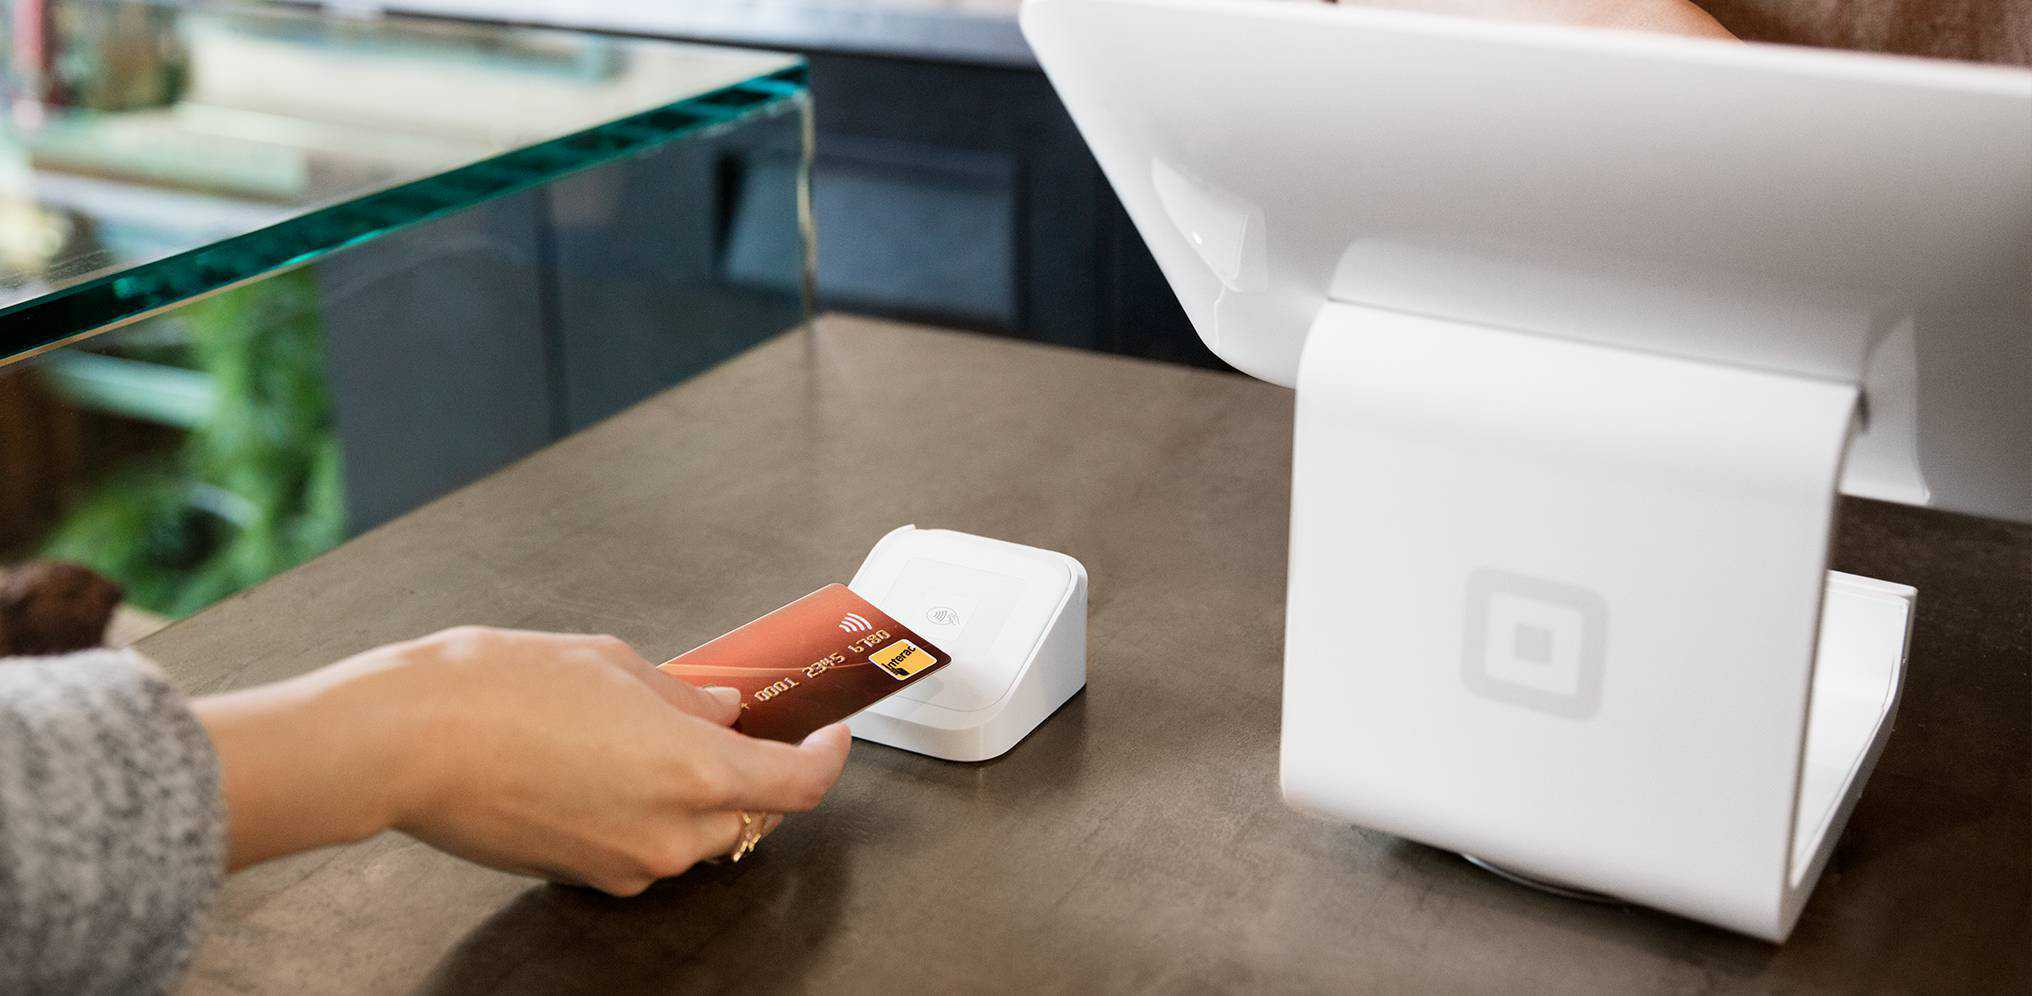 square stand with contactless card reader